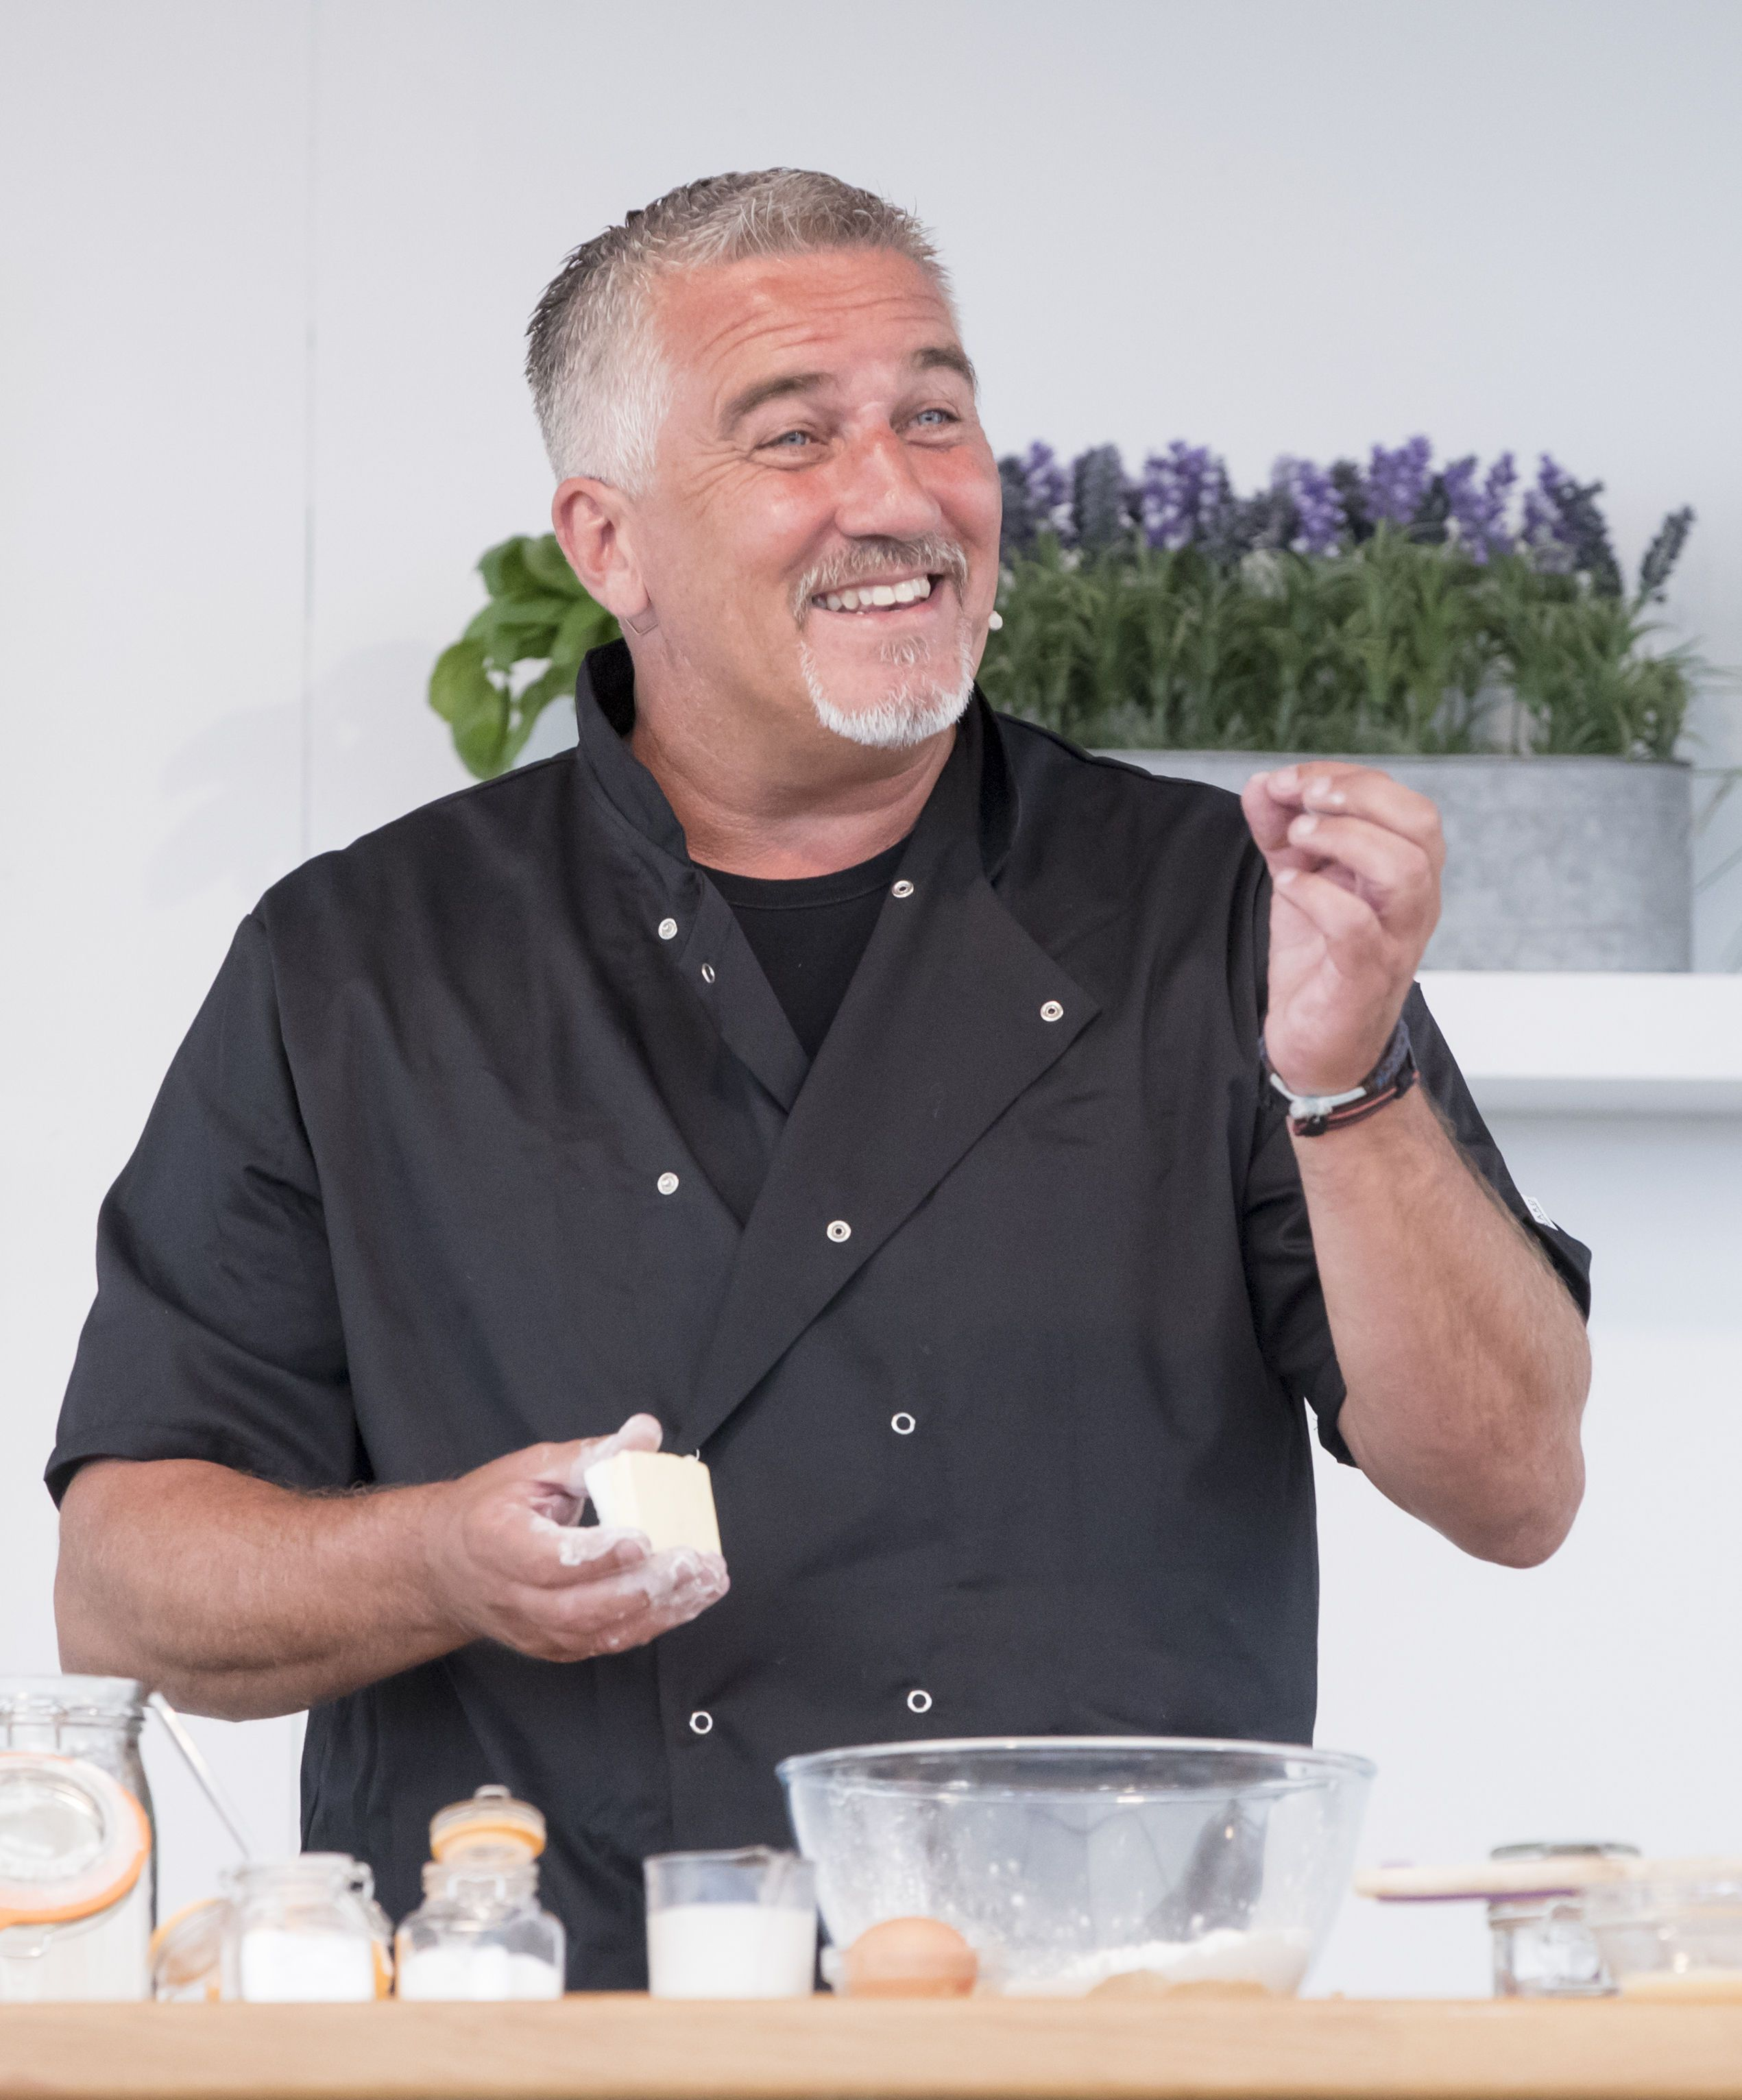 'The Great British Bake Off' Judge Paul Hollywood Says Some Of The Show's Challenges Are 'Too Difficult'